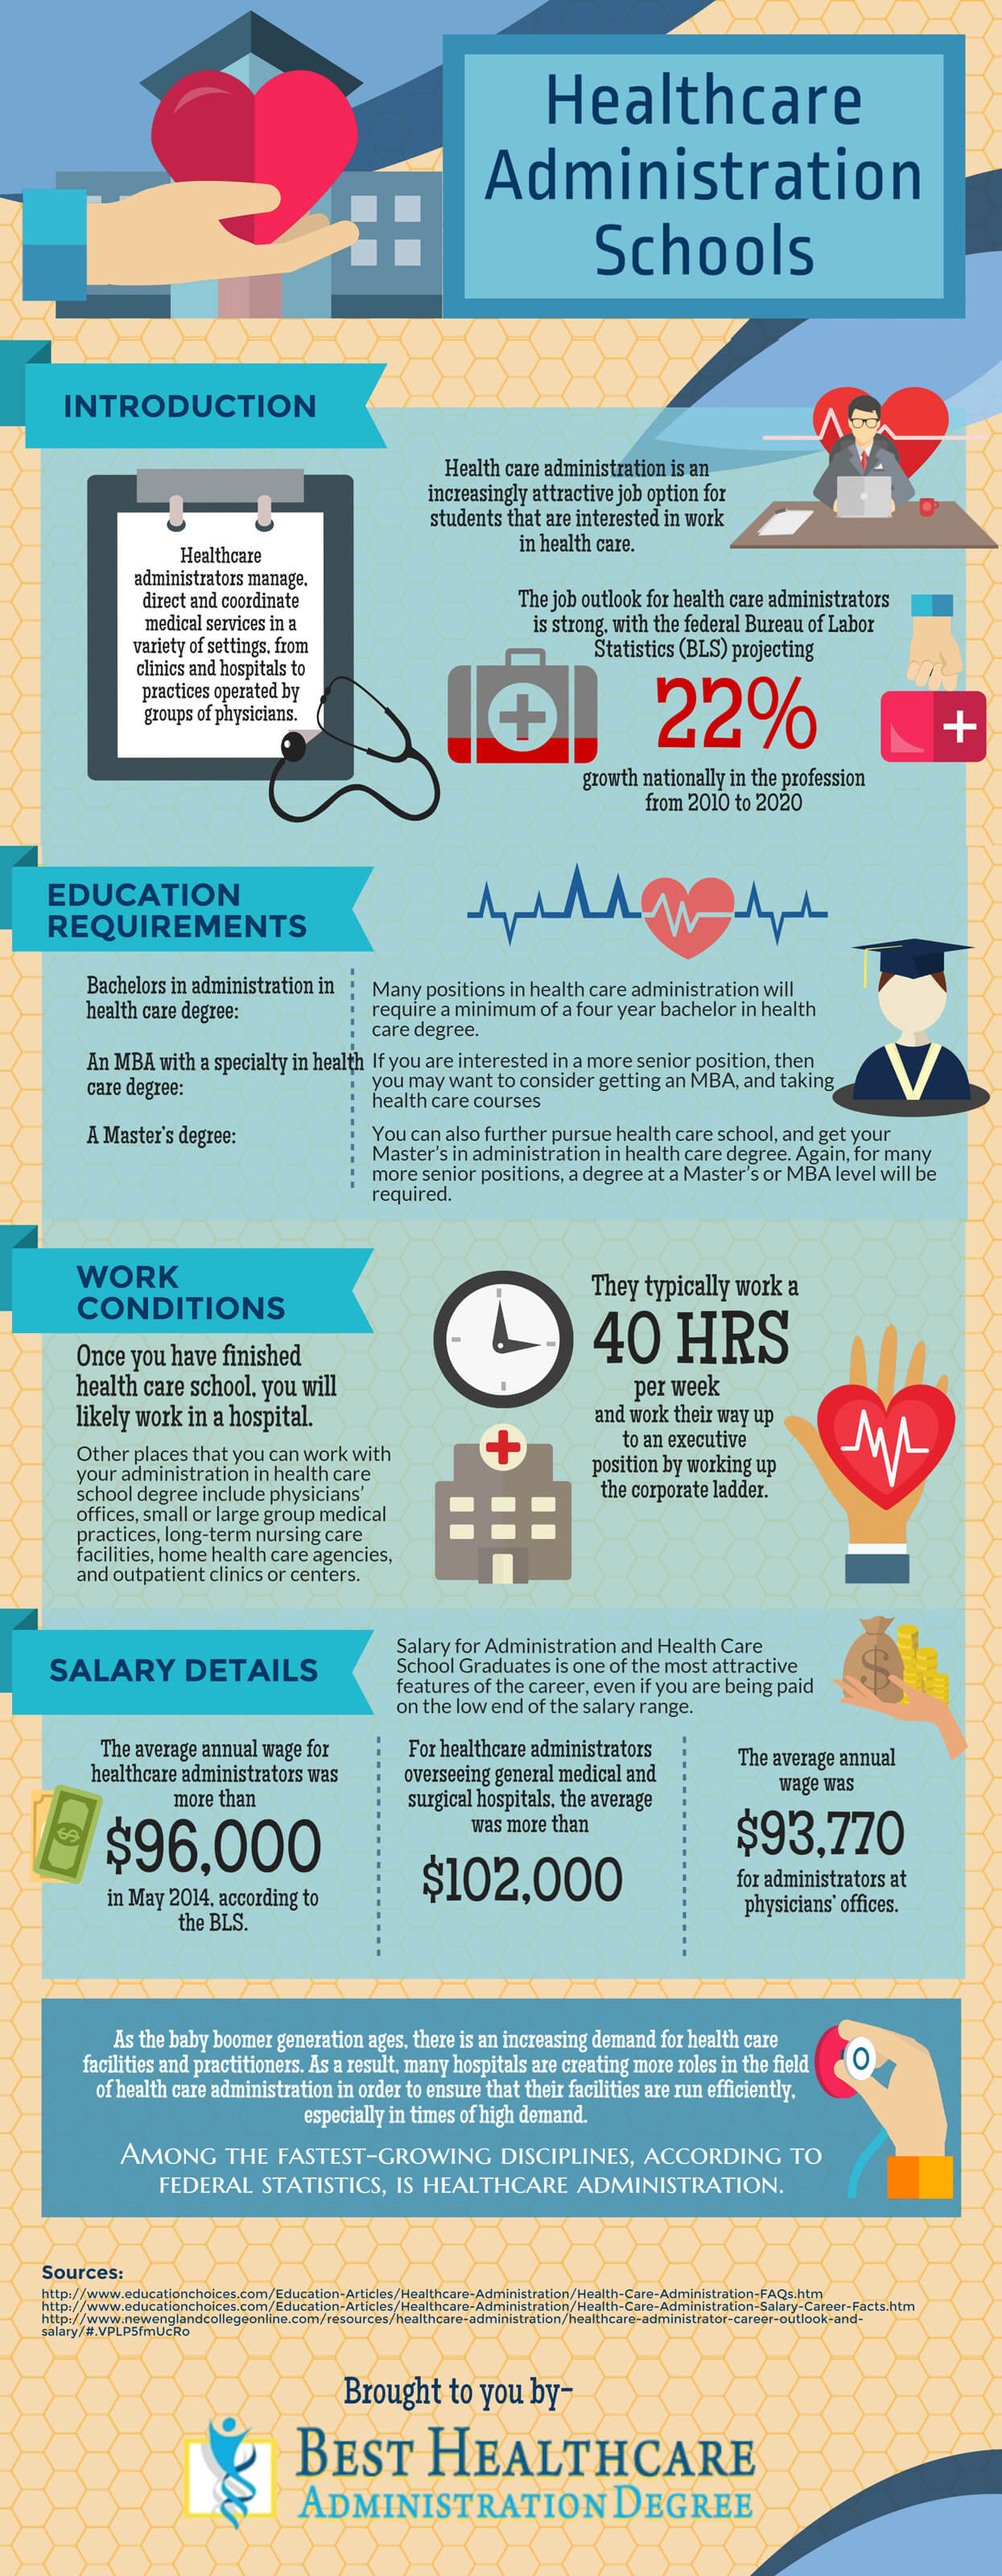 Healthcare-Administration-Degree-Infographic